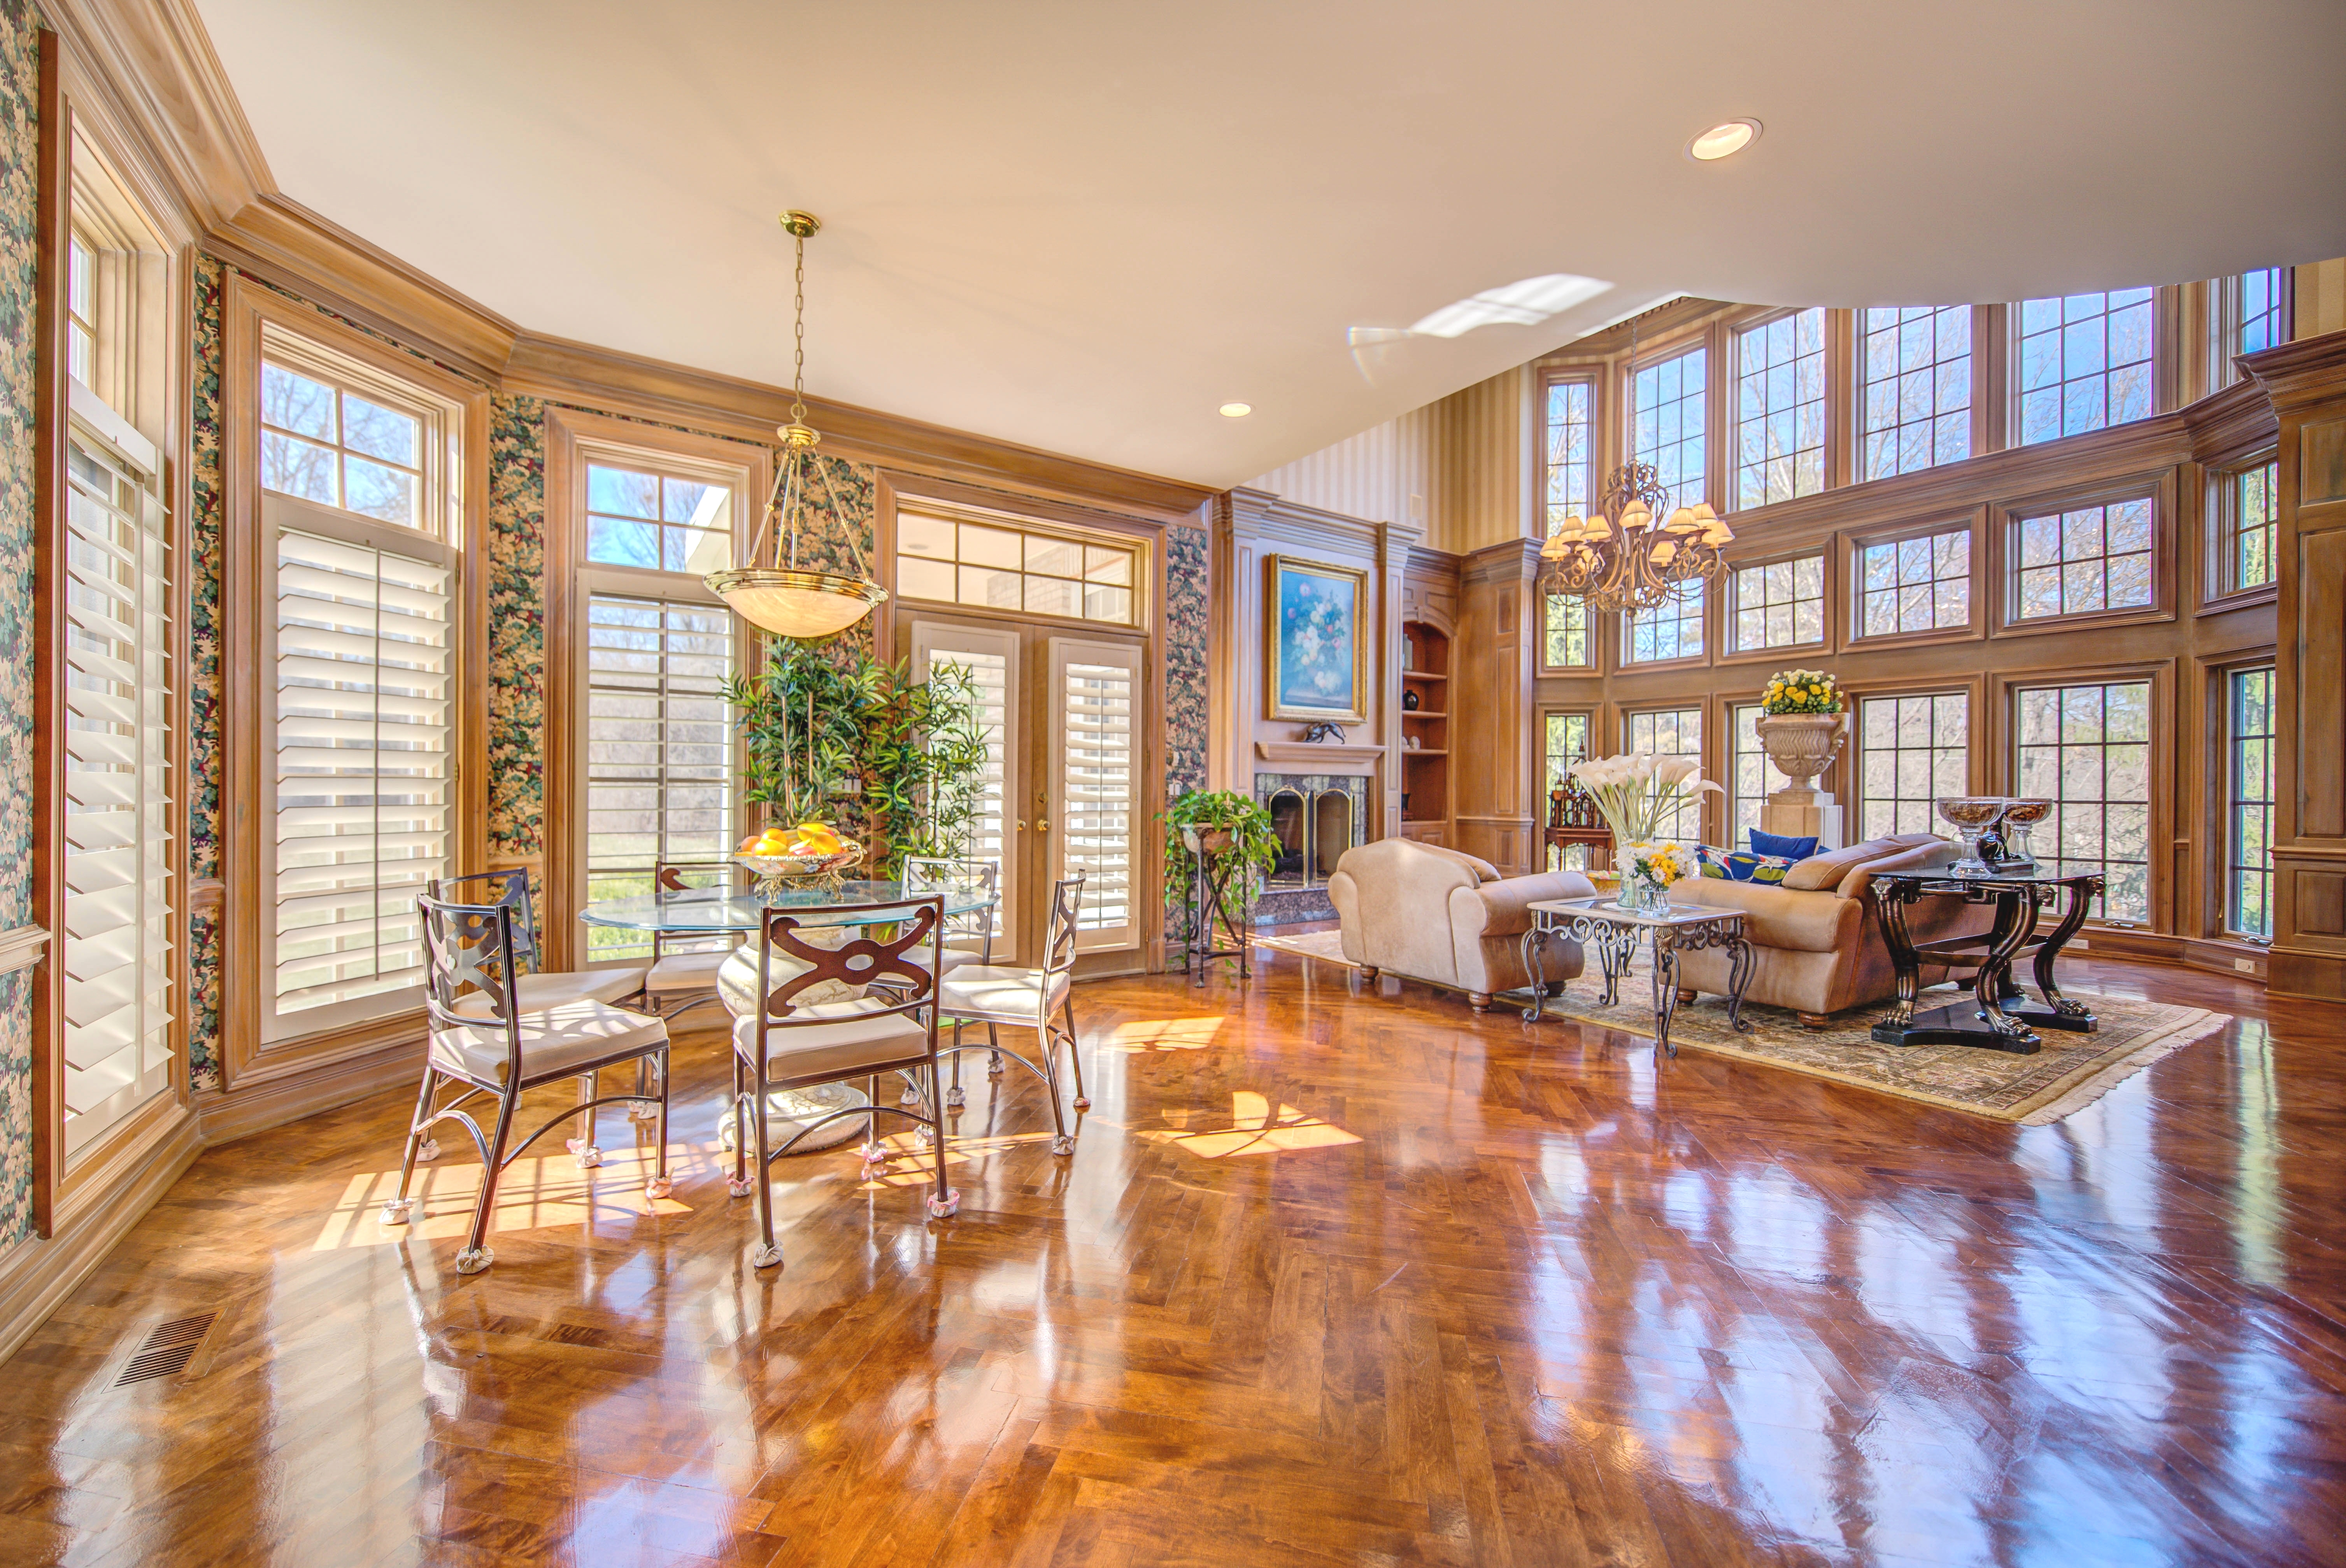 Jt Photography Llc Specializes In Interior And Exterior Architectural Real Estate St Louis Mo The Surrounding Areas